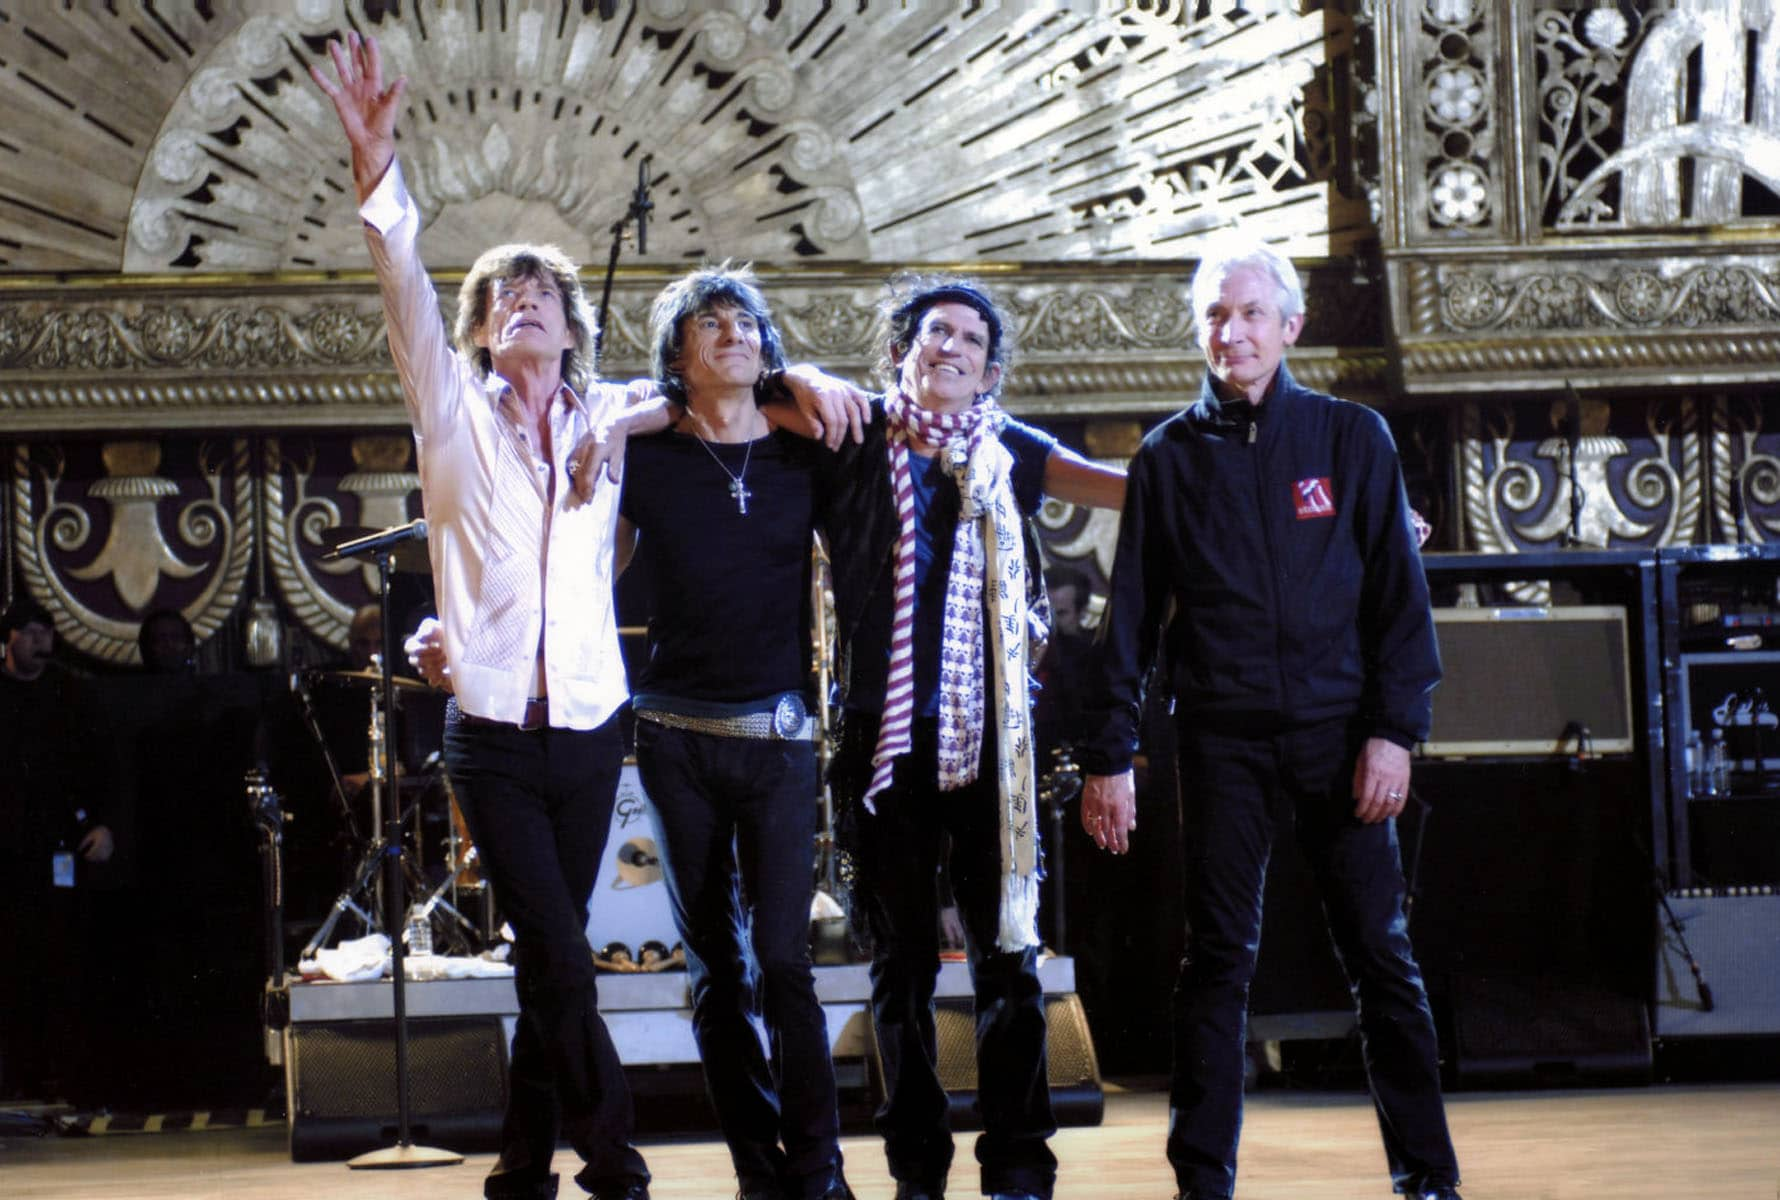 SHINE A LIGHT, The Rolling Stones: Mick Jagger, Ron Wood, Keith Richards, Charlie Watts, 2007